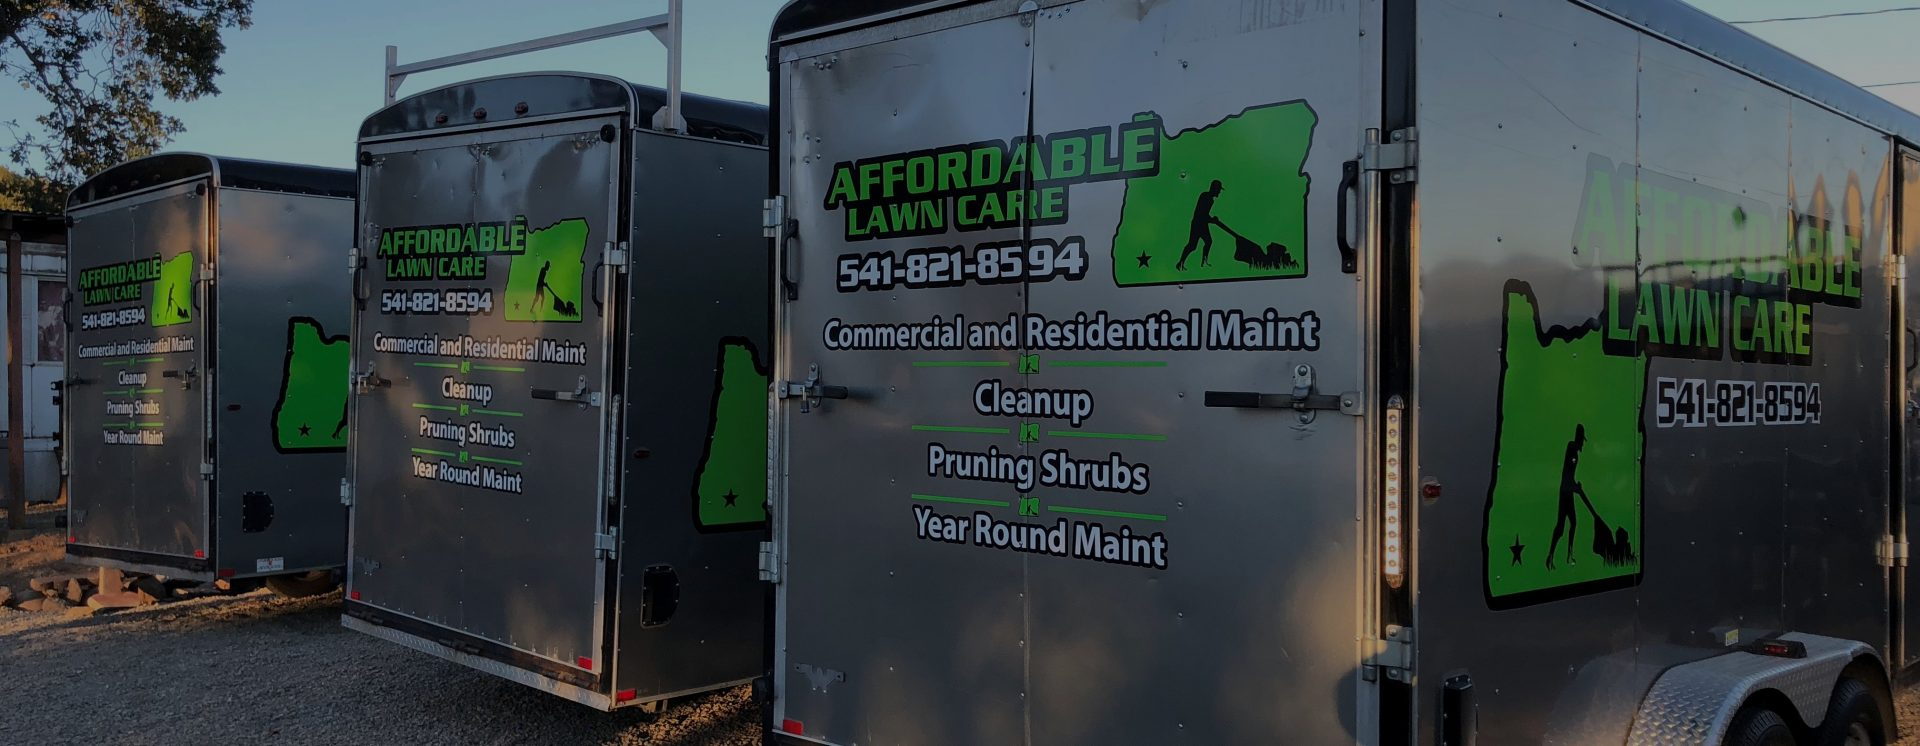 Affordable Lawn Care Medford